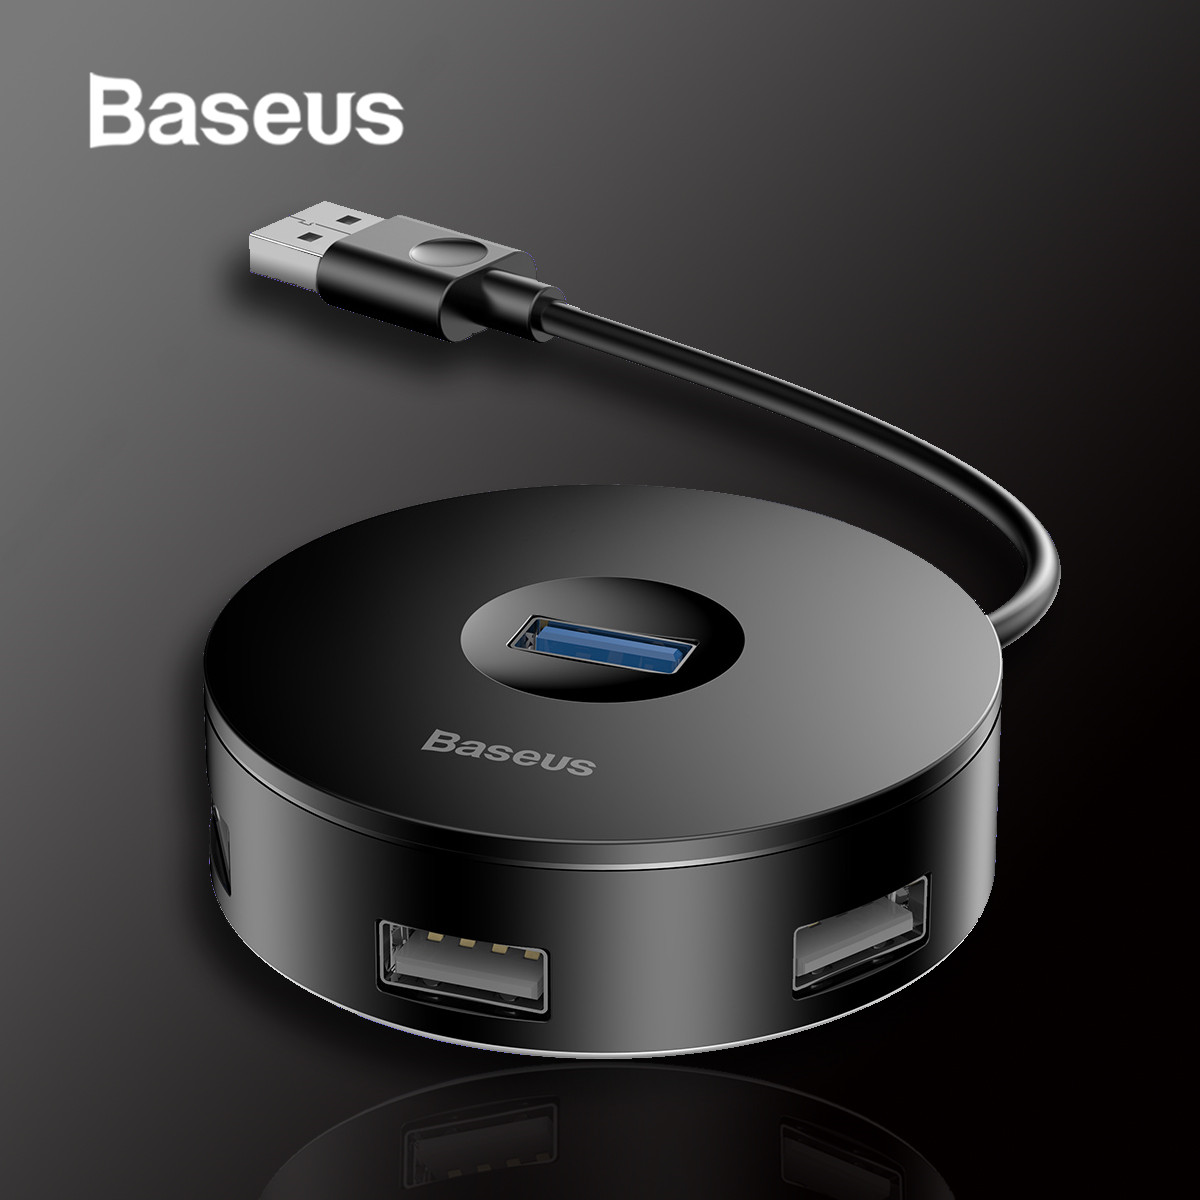 Baseus USB 3.0 4-Port USB Hub 5Gbps Adapter USB Type C HUB For Huawei Computer PC Macbook Type C USB 3.0 HUB